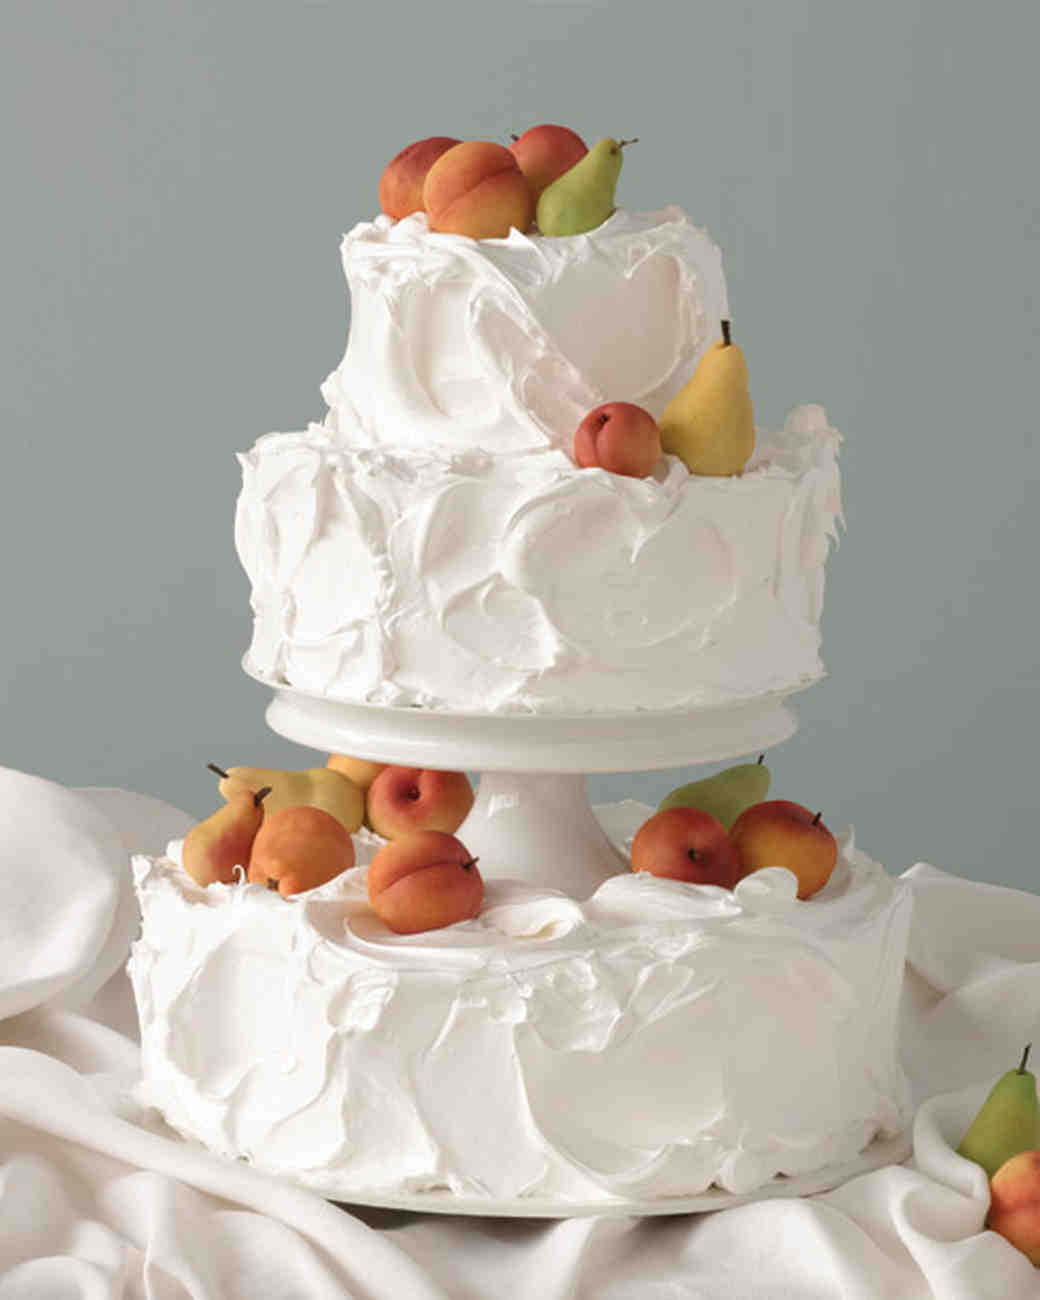 Peach and Pear Wedding Cake